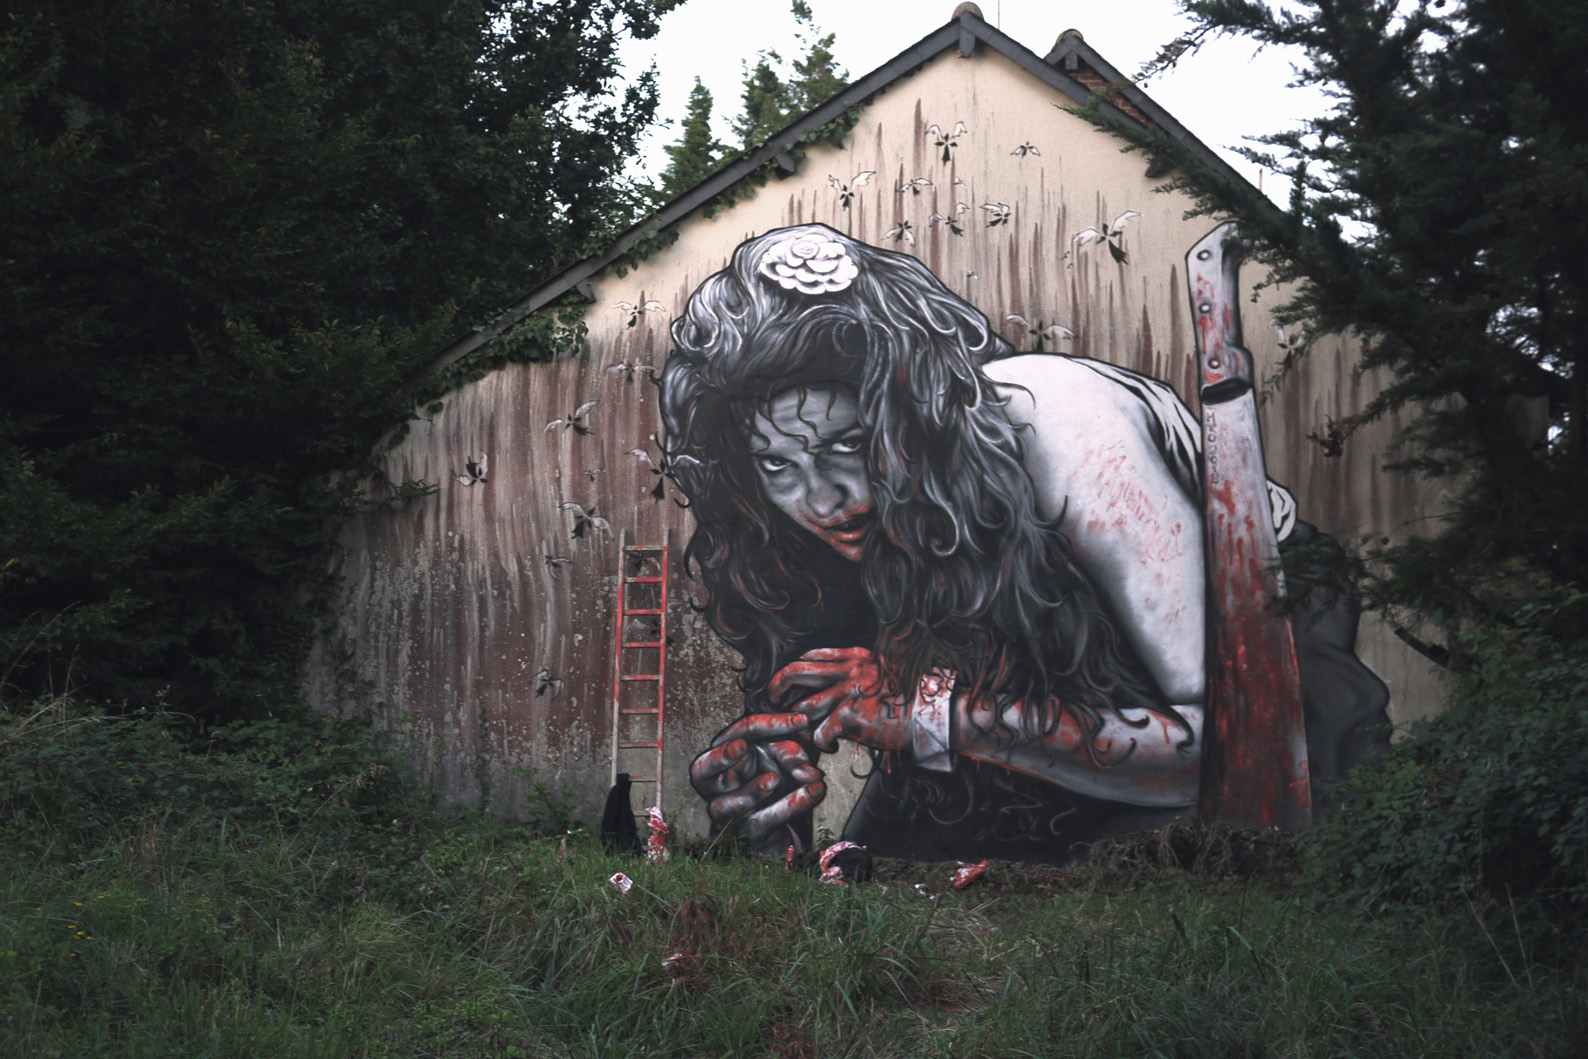 3d street art by mto in rennes france 2